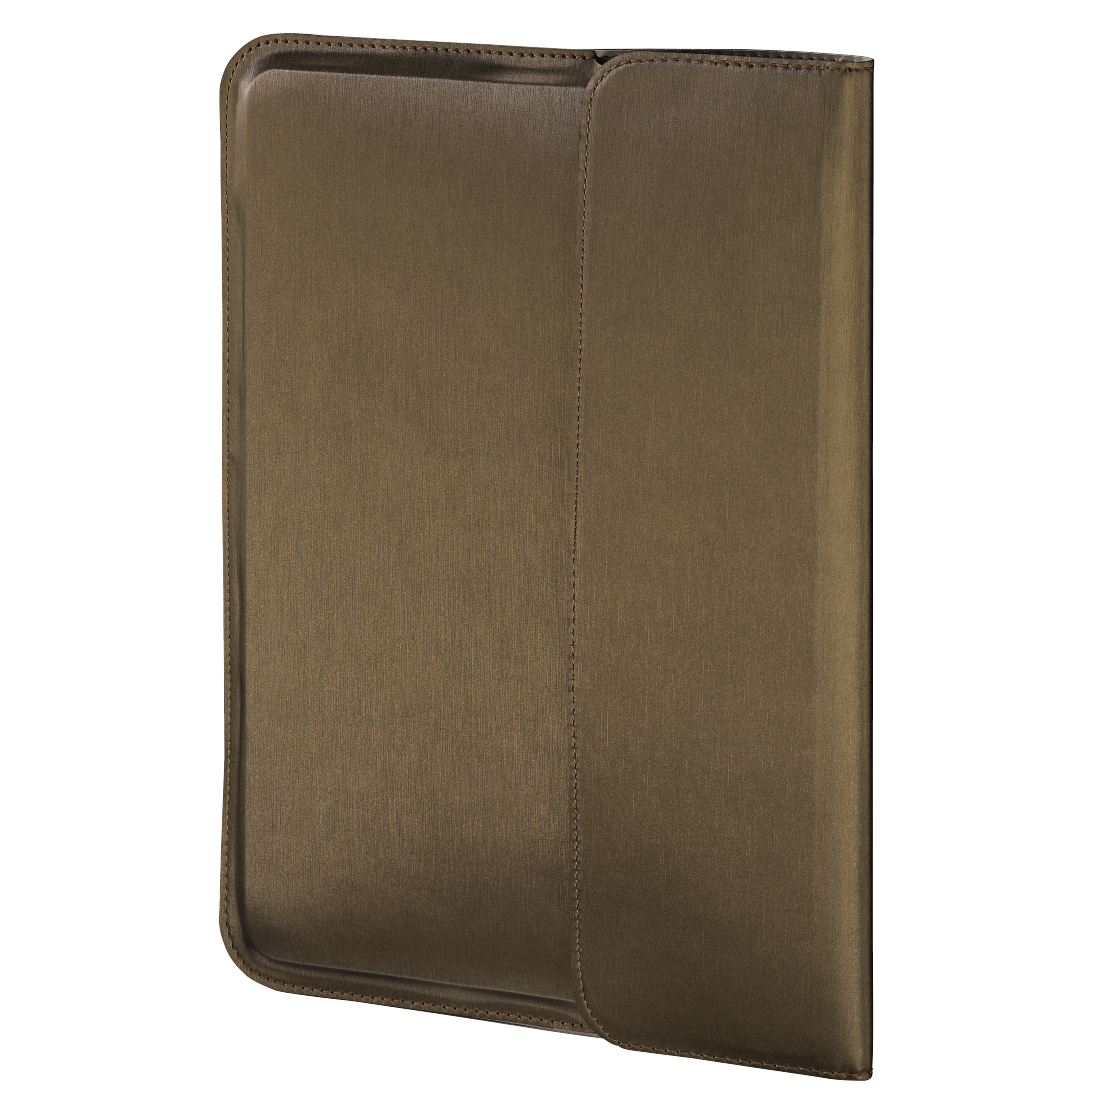 abx2 High-Res Image 2 - Hama, Super Slim Tablet Case for Apple iPad Pro 12.9/iPad Pro 12.9 (2017),brown